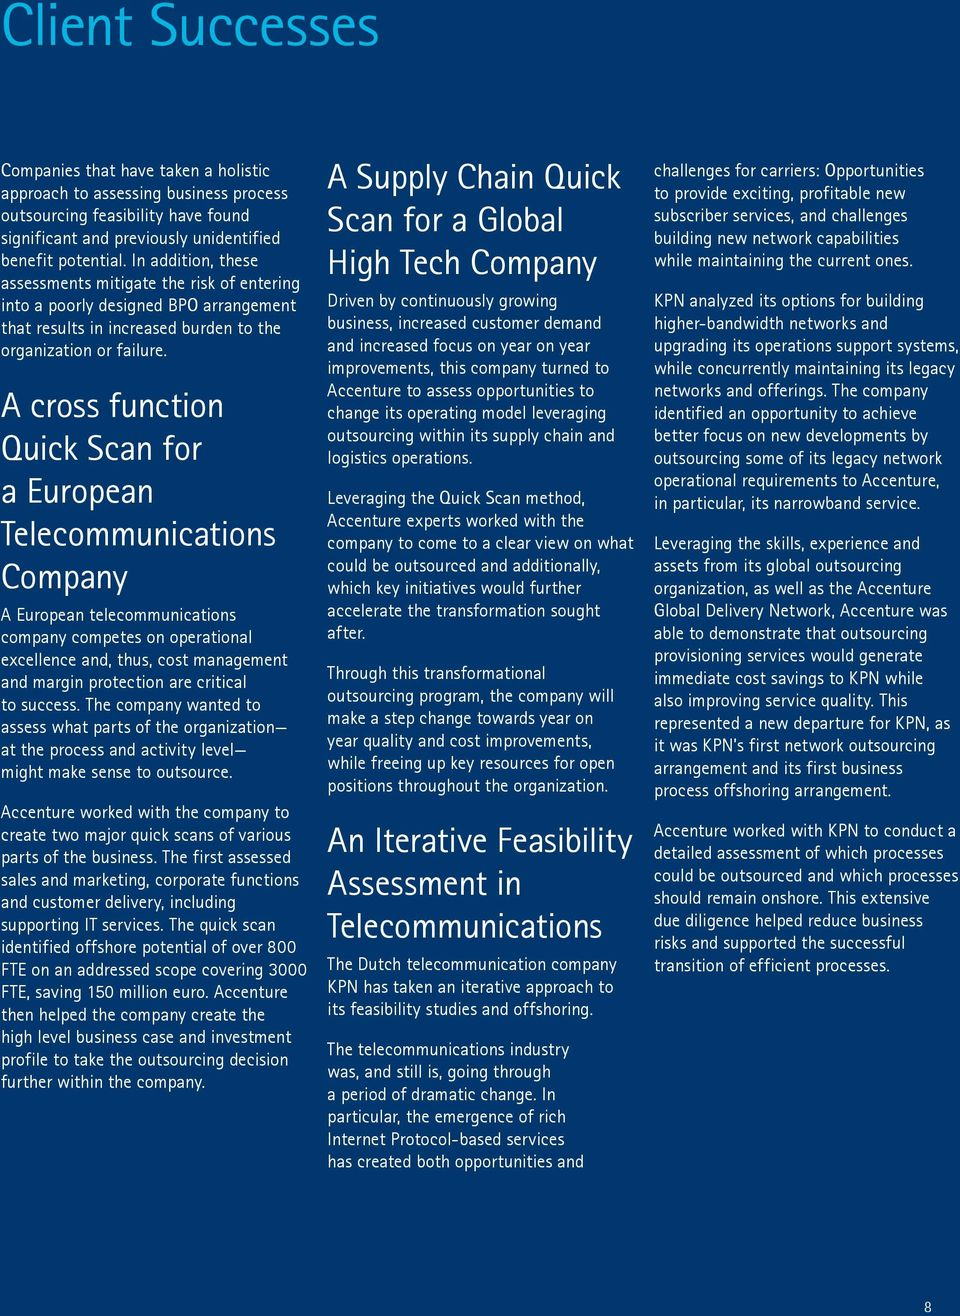 A cross function Quick Scan for a European Telecommunications Company A European telecommunications company competes on operational excellence and, thus, cost management and margin protection are